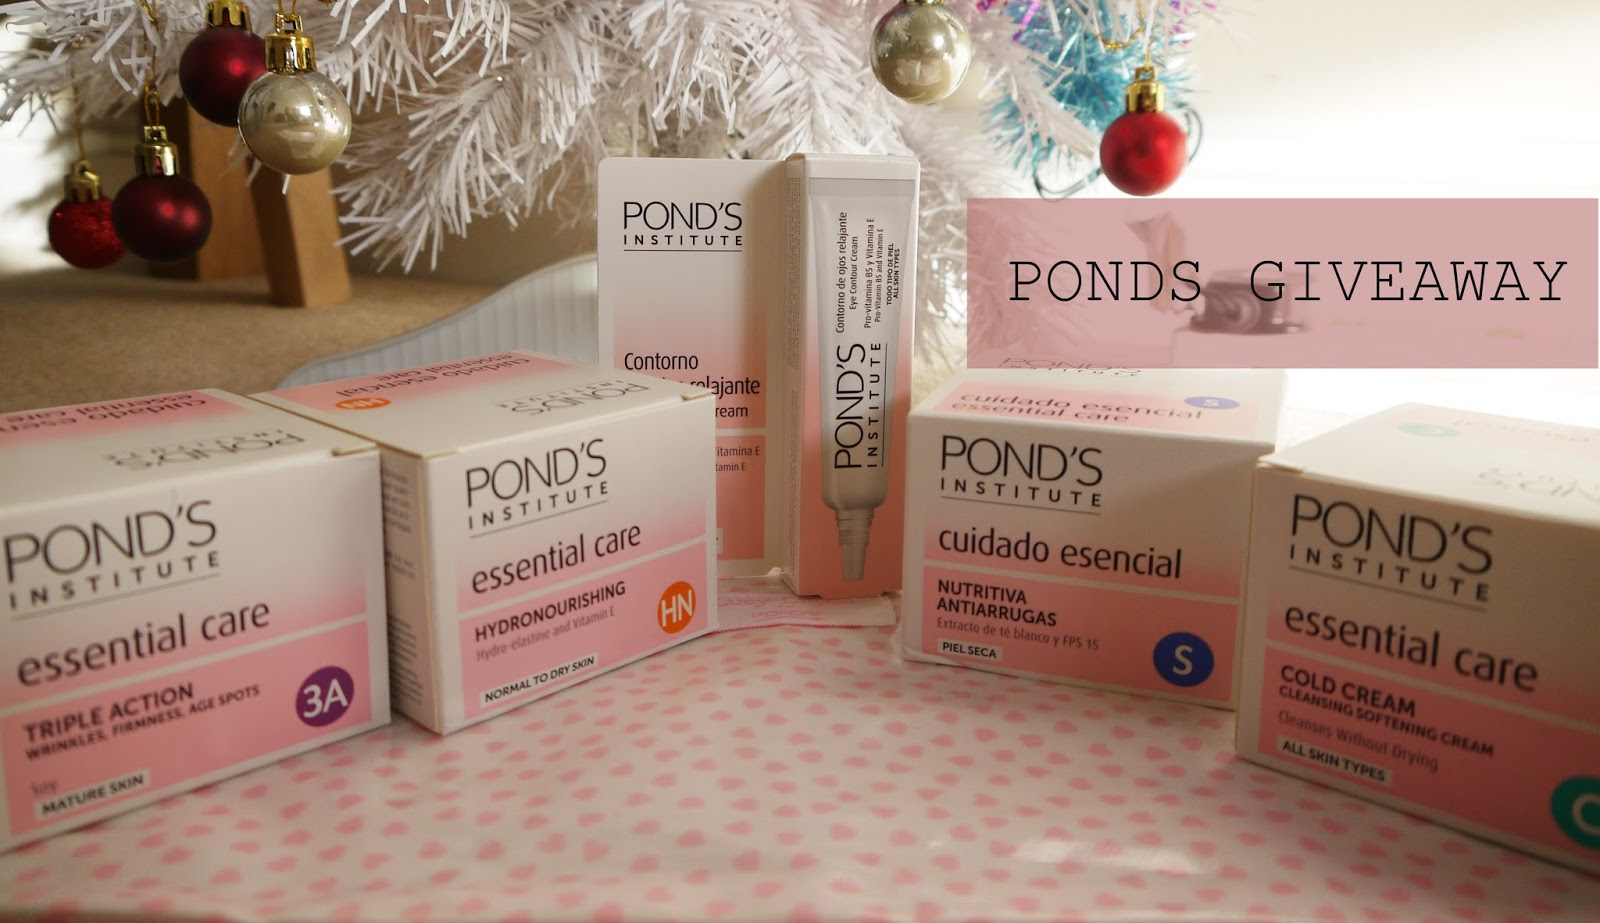 GIVEAWAY! PONDS INSTITUTE COLLECTION